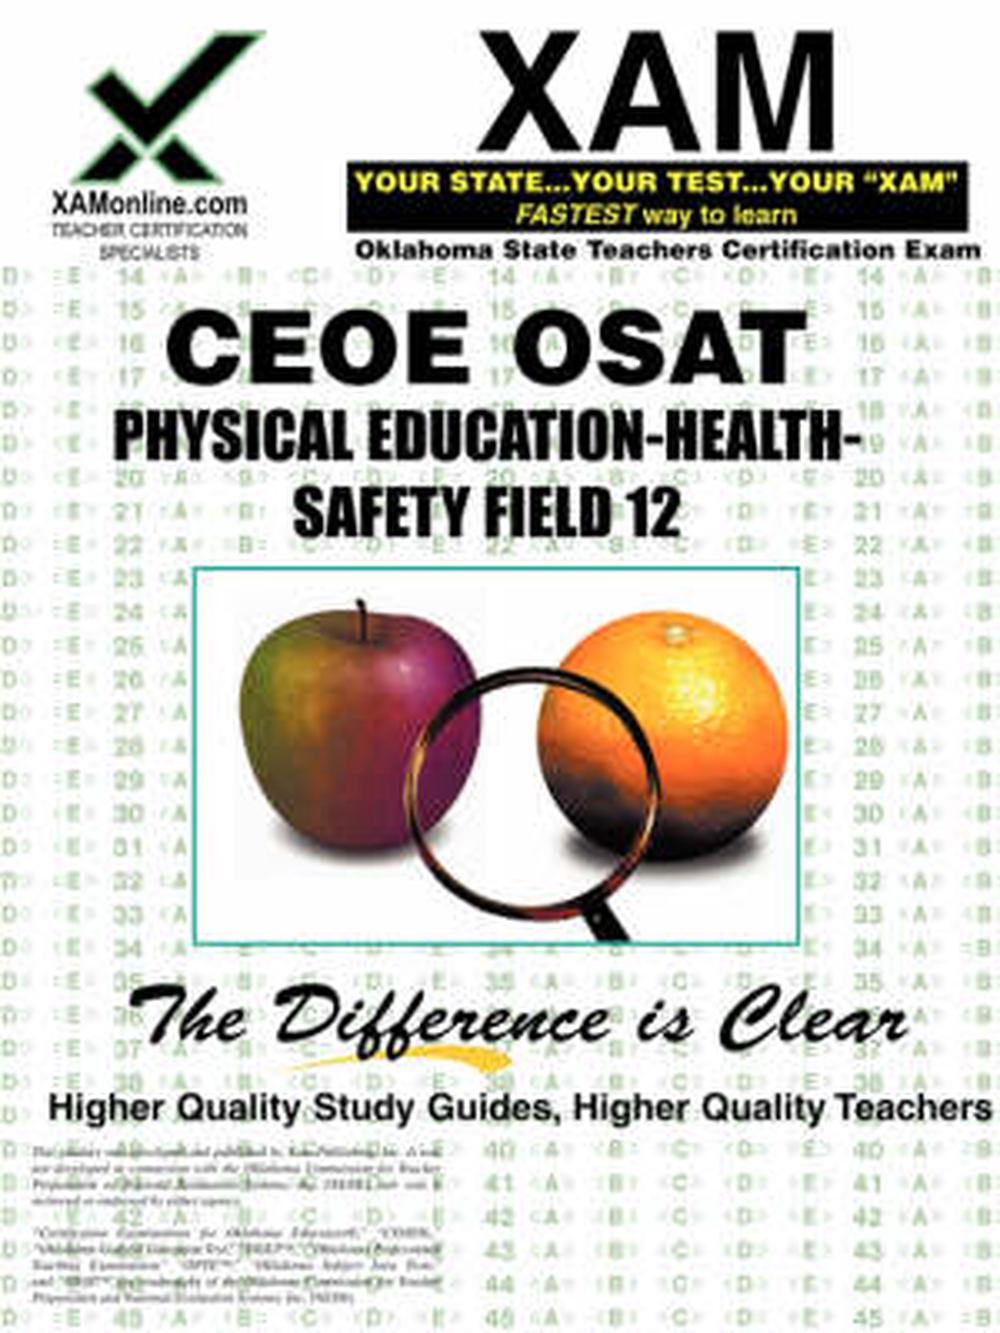 Ceoe Osat Physical Education-Safety-Health Field 12 Certification Test Prep Study  Guide